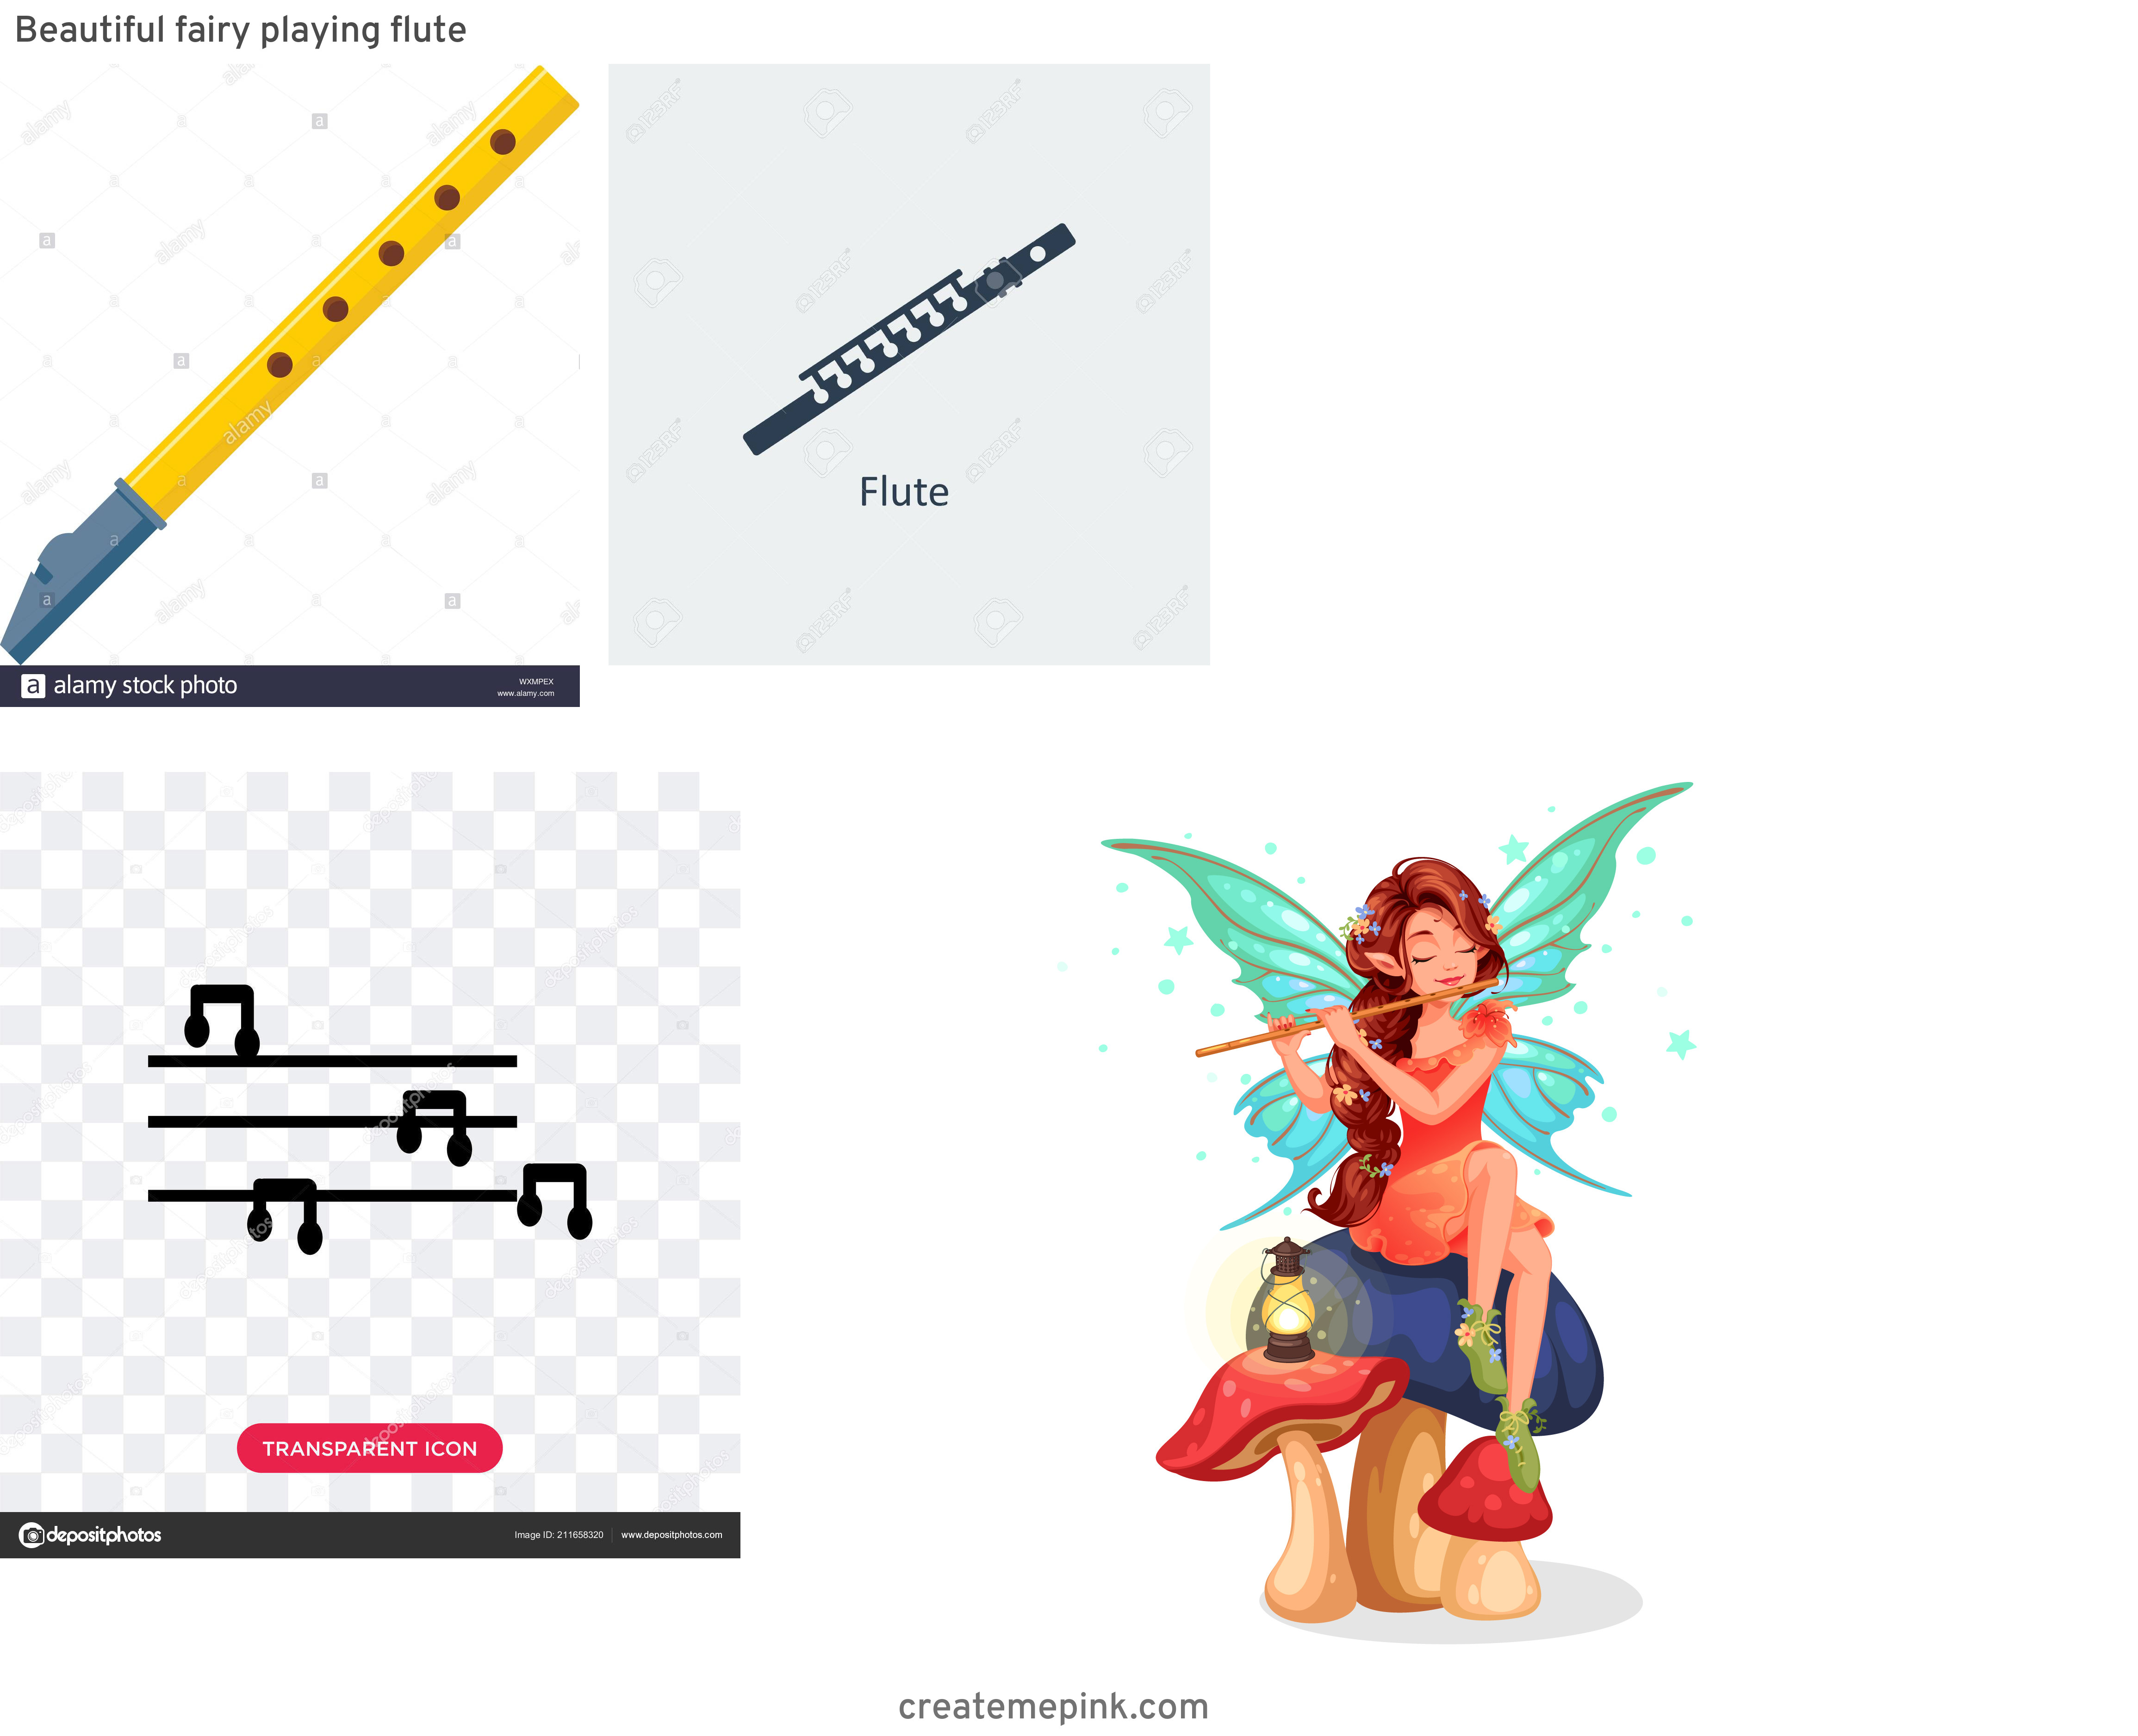 Flute Vector: Beautiful Fairy Playing Flute